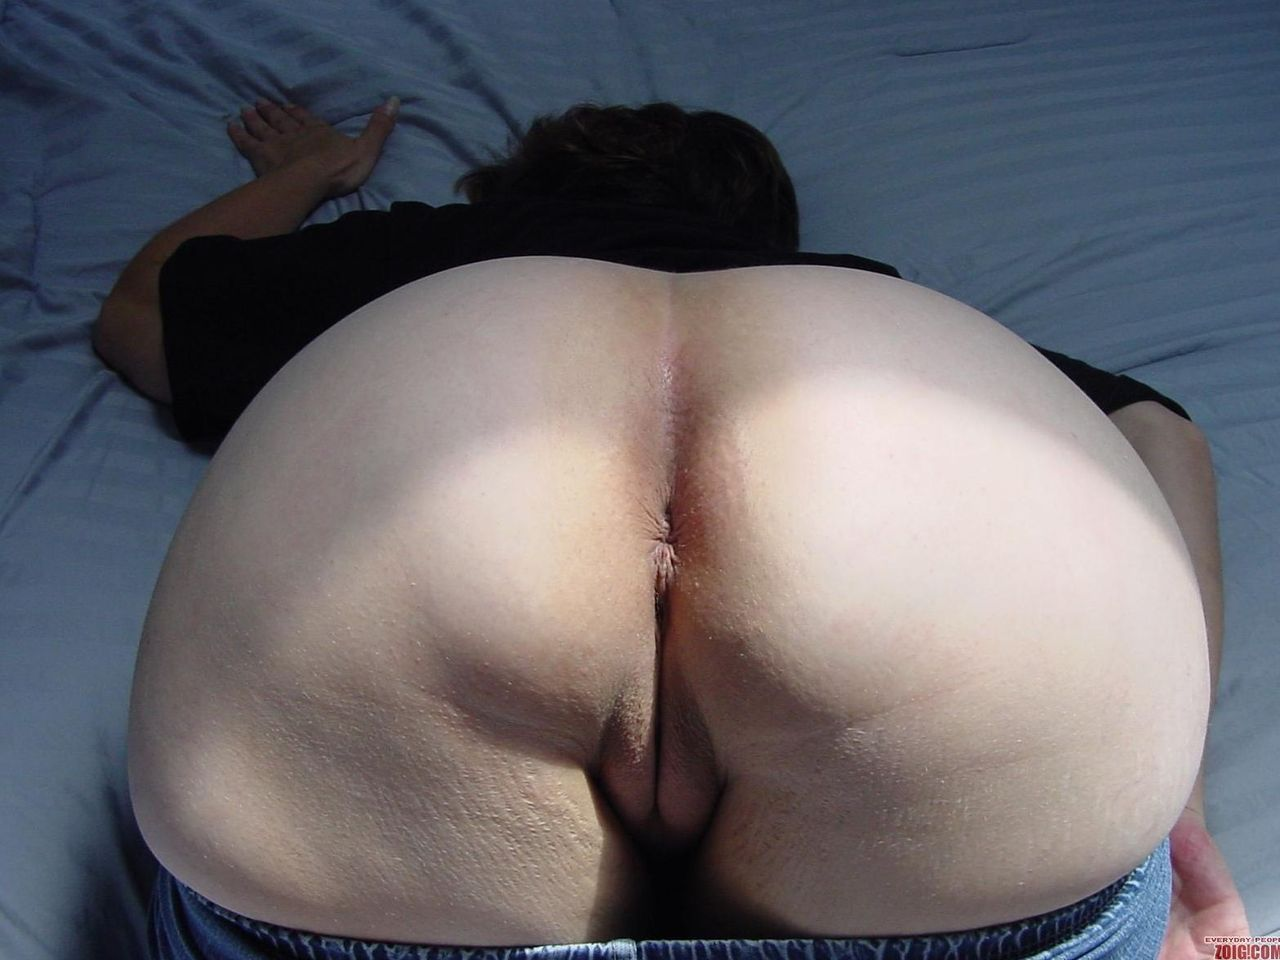 Asian wife bending over showing big ass 5